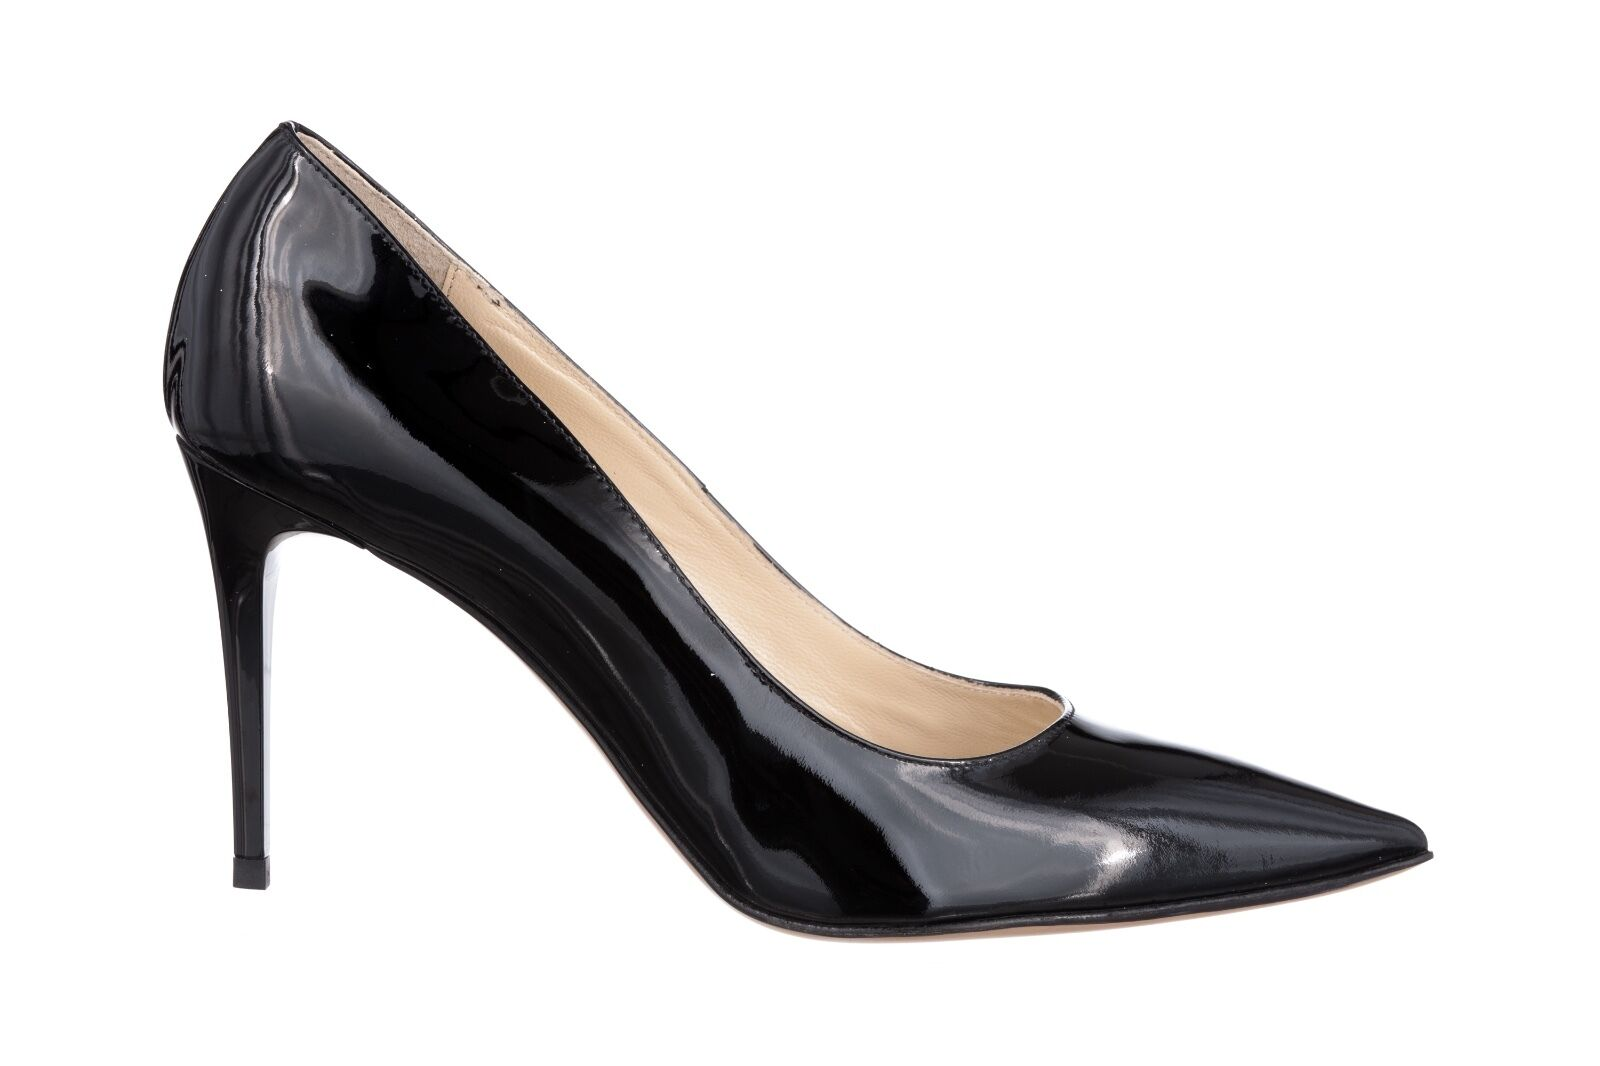 MORI MADE IN ITALY POINTY HIGH HEELS PUMPS DECOLTE zapatos zapatos zapatos LEATHER negro negro 42 b824cc